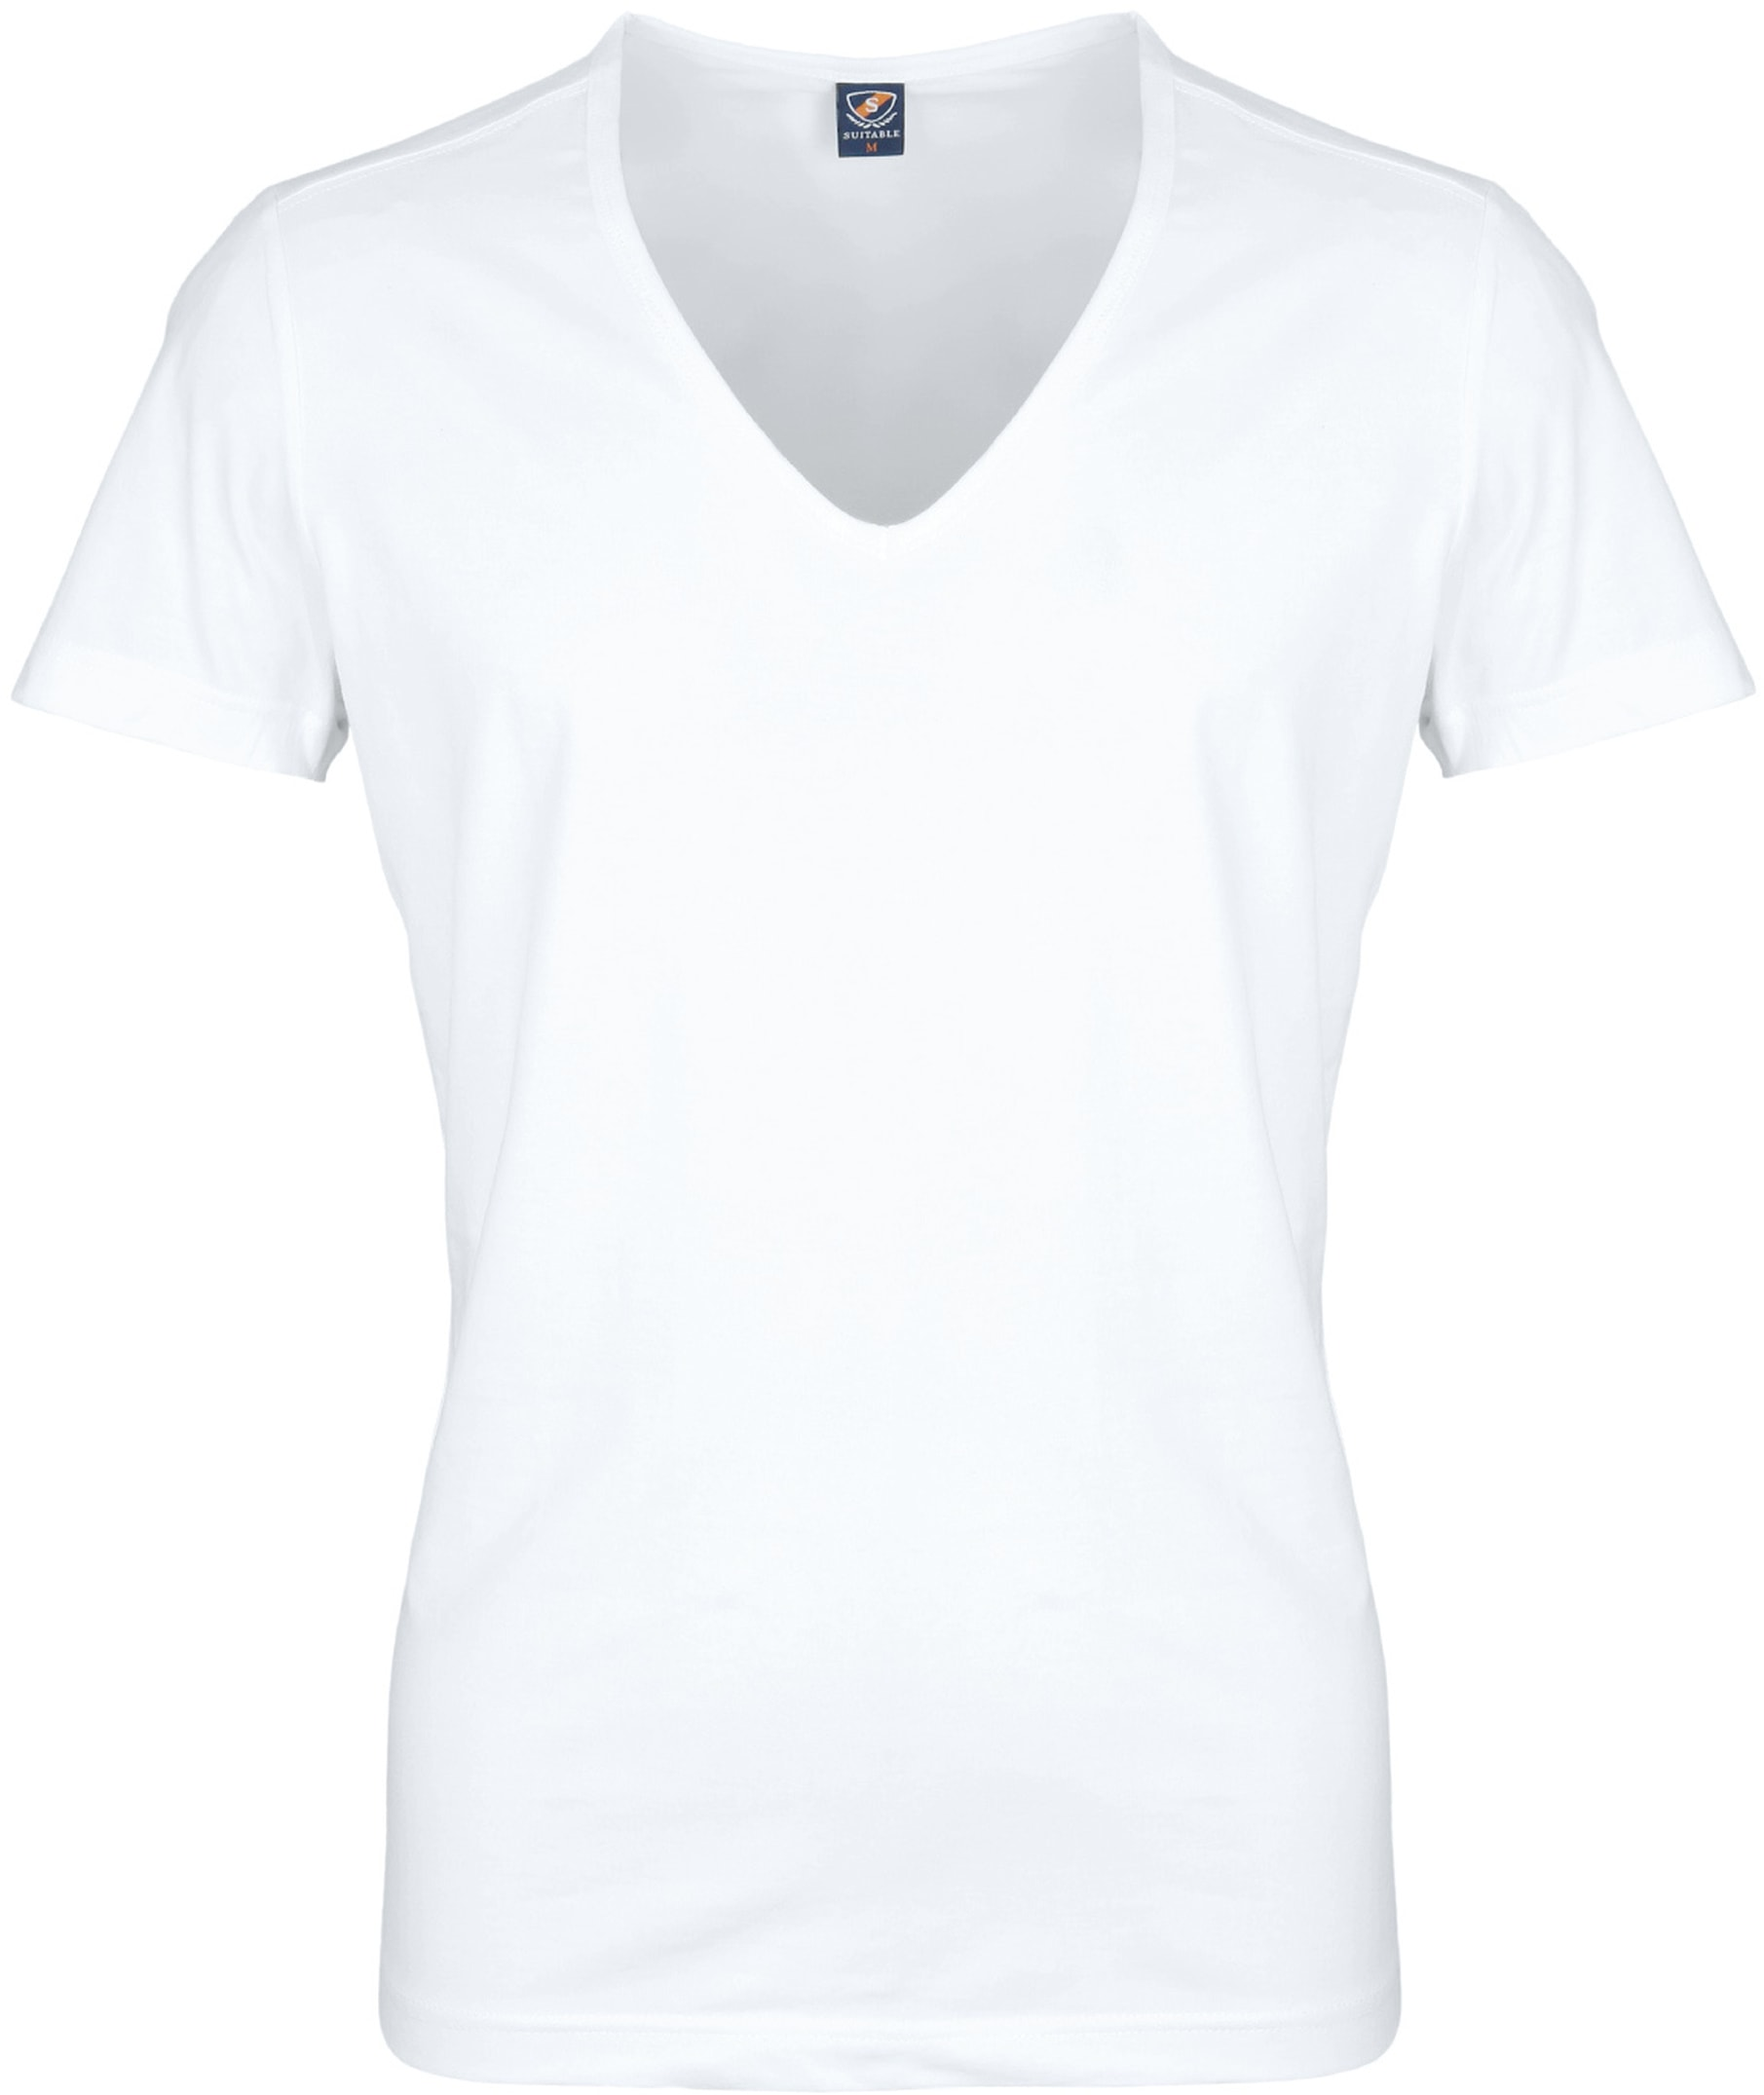 Diepe V hals 4-Pack Stretch T-Shirt foto 1